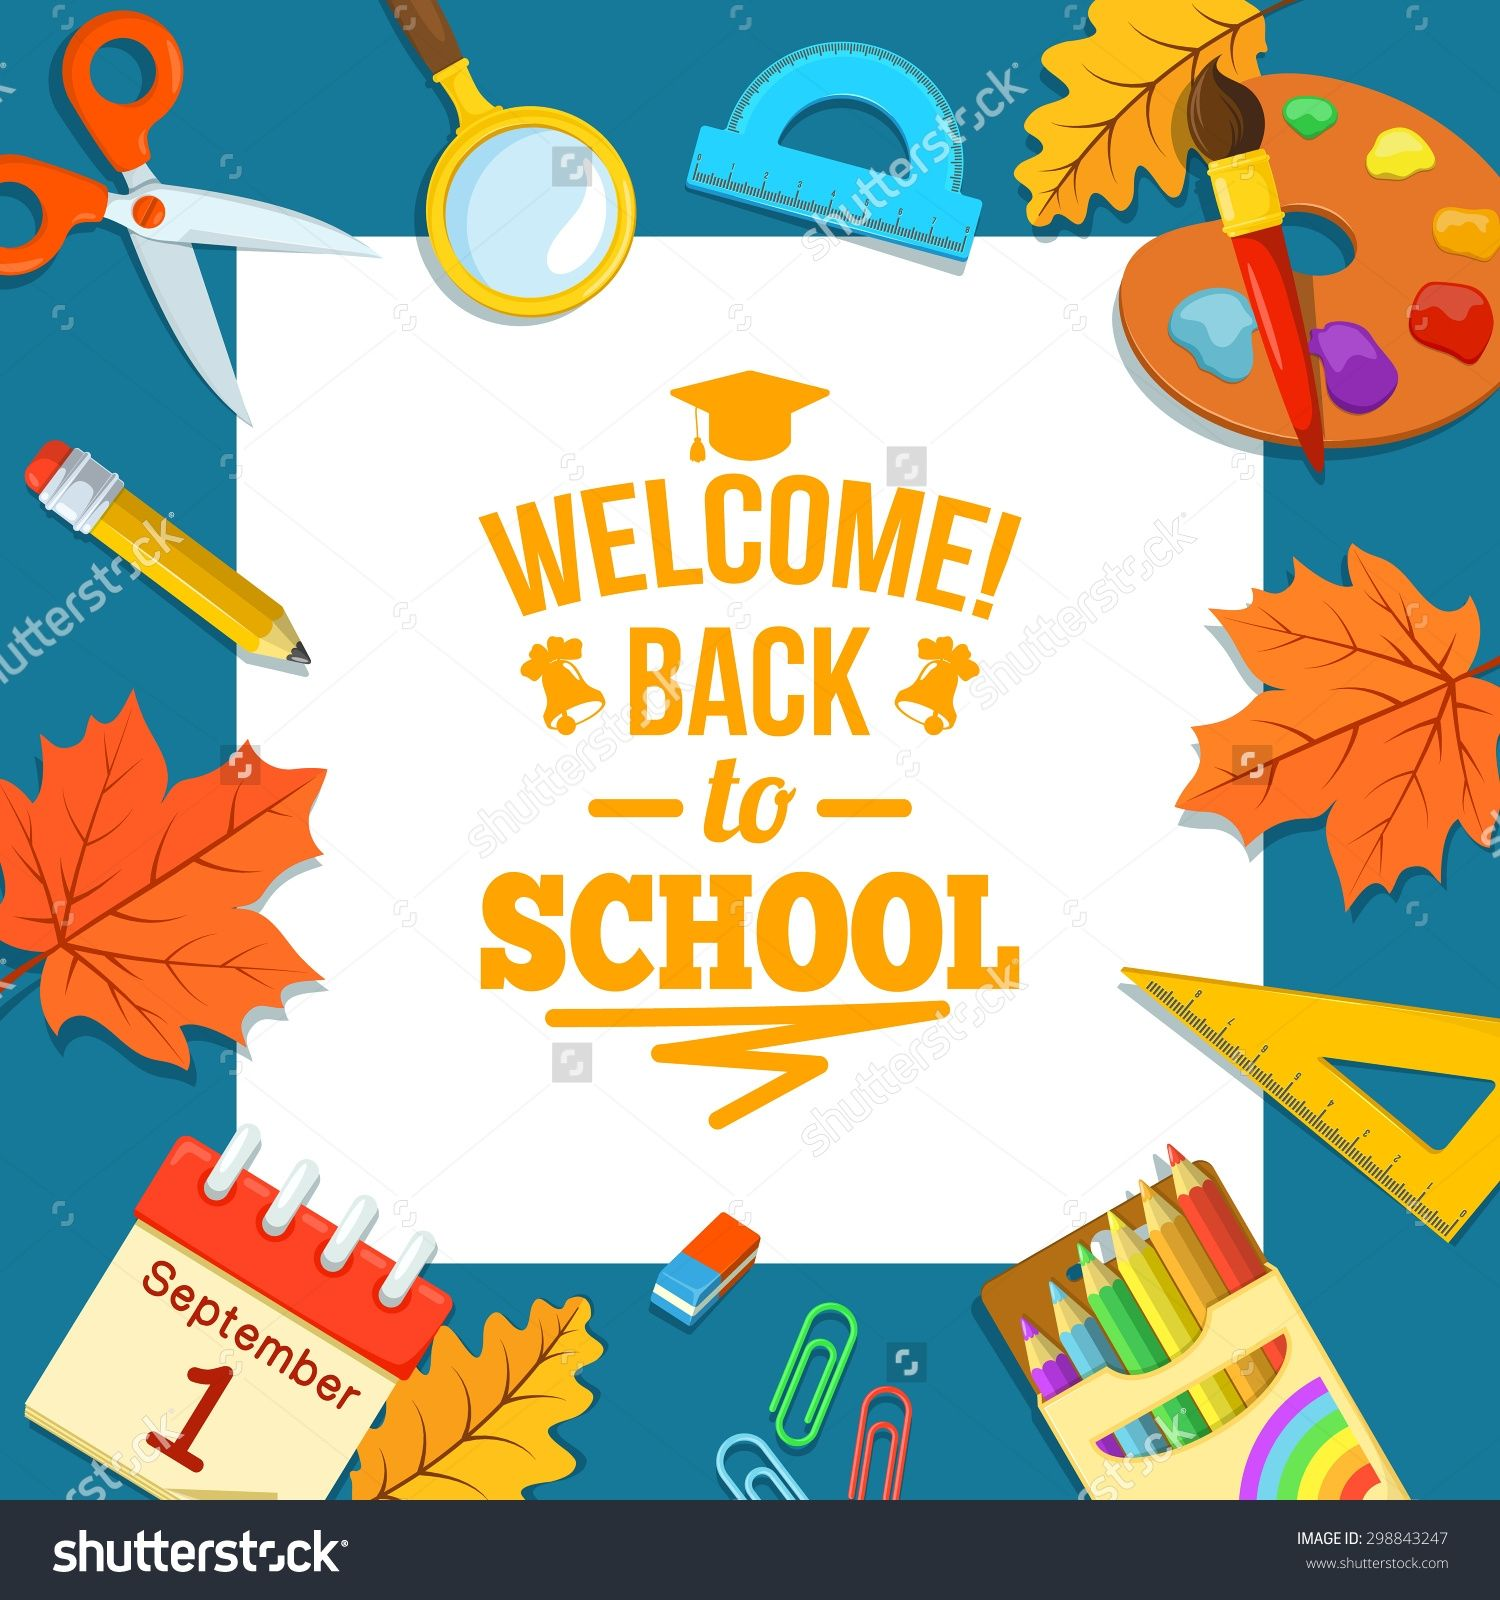 Free background design about school download new background free background design about school download new background design about school download free background design voltagebd Choice Image